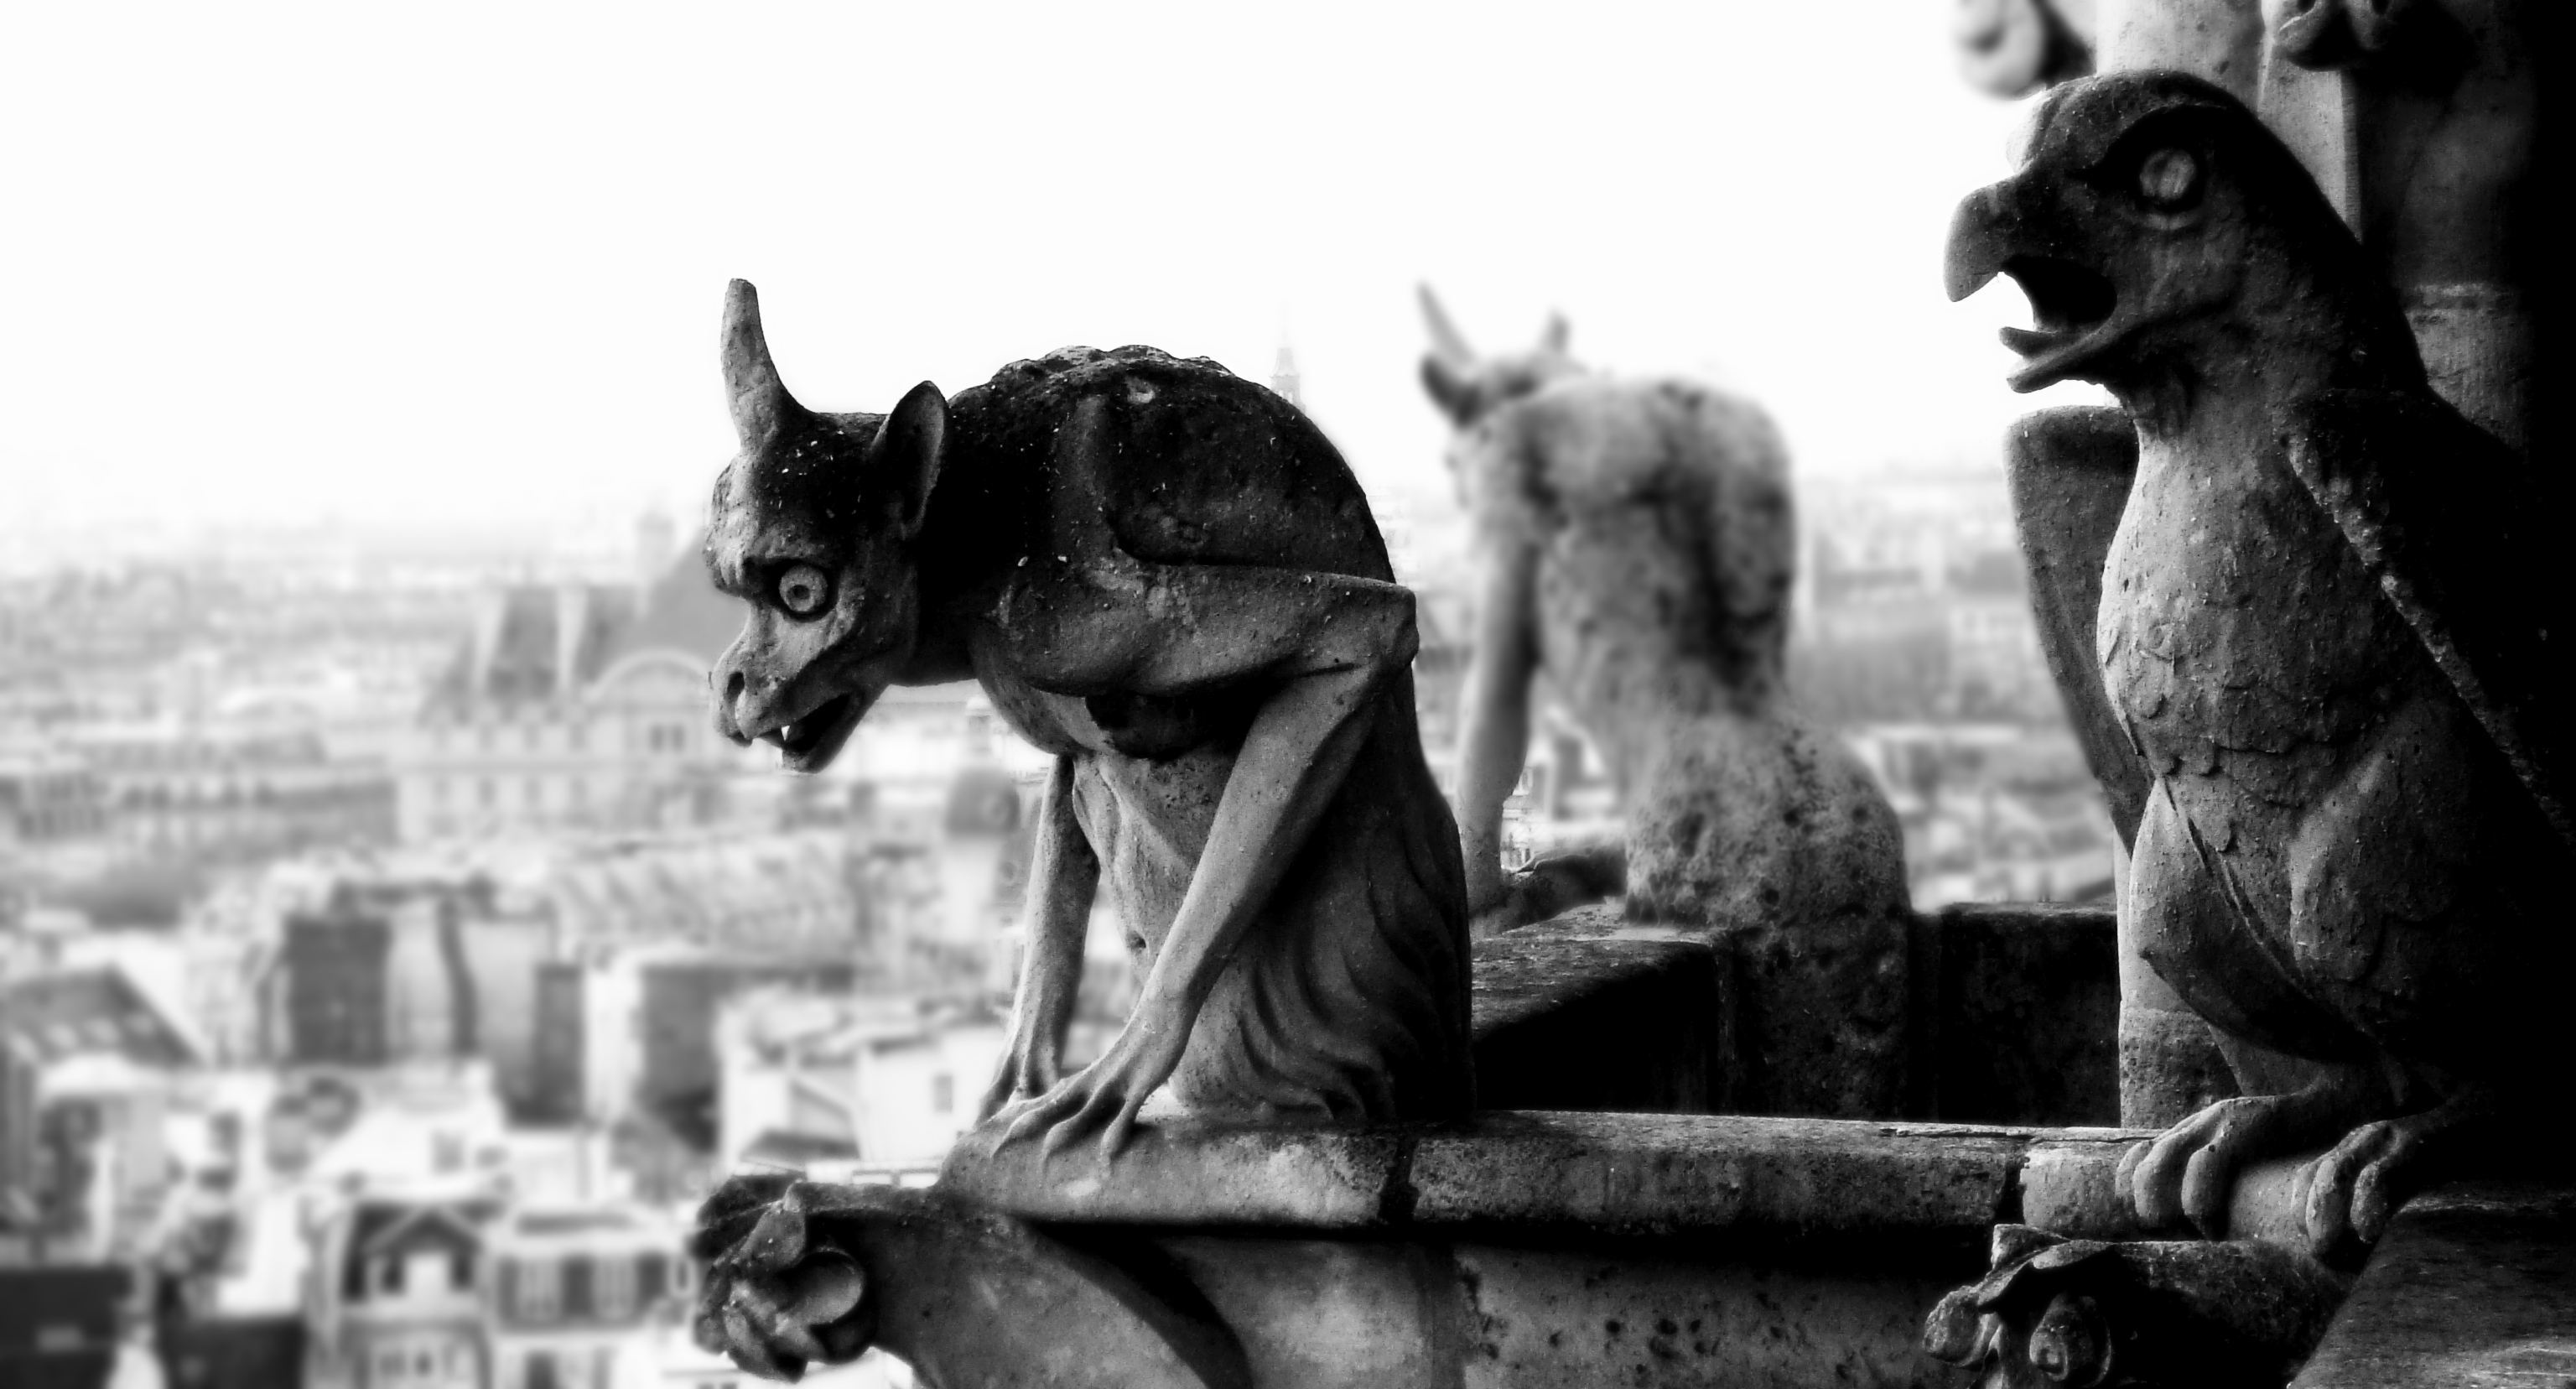 grayscale gargoyle statues monochrome HD Wallpaper